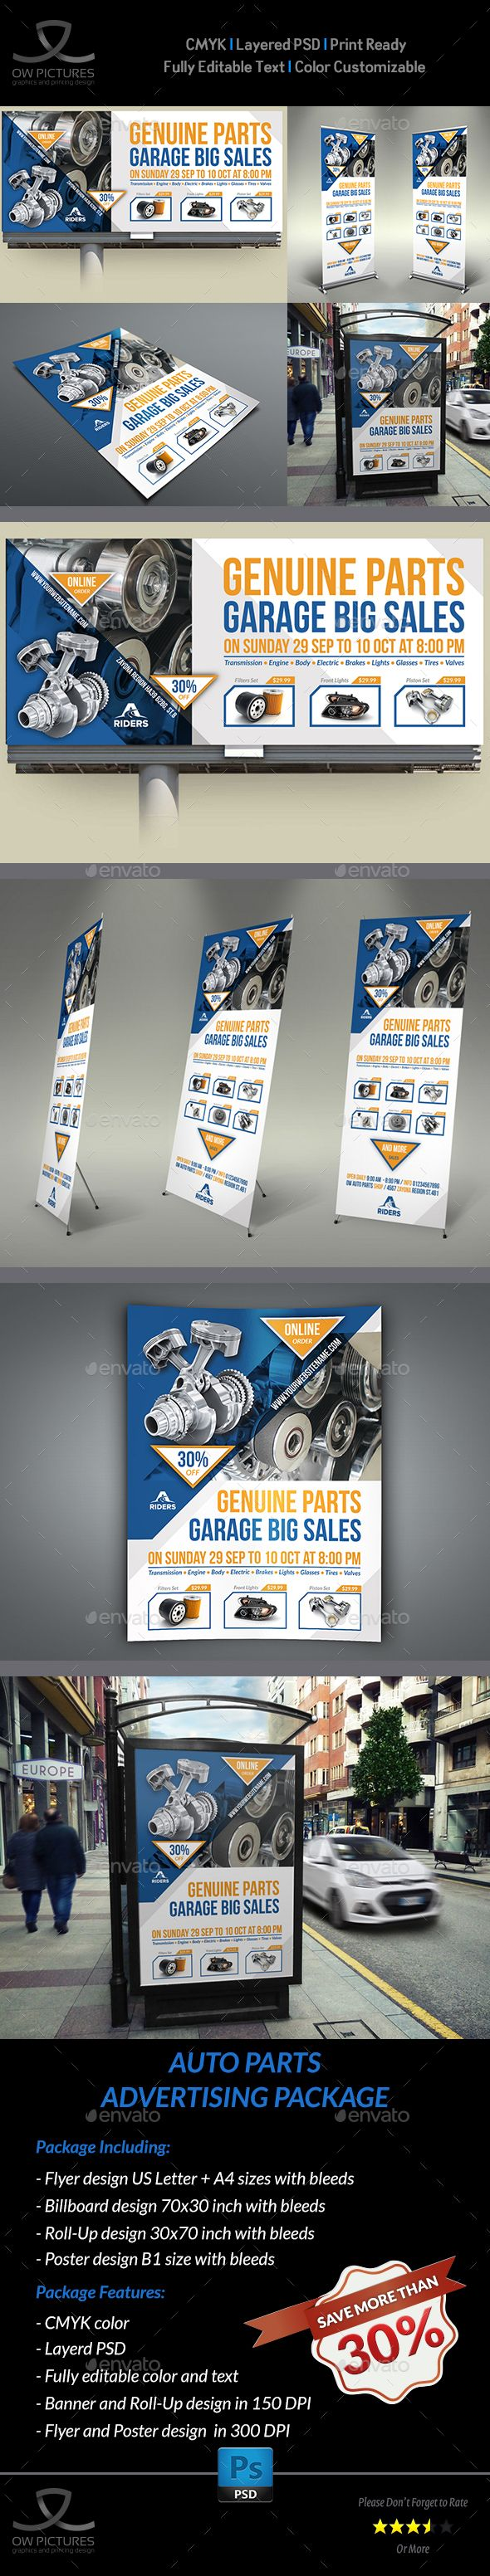 Parts of a poster design - Auto Parts Advertising Bundle